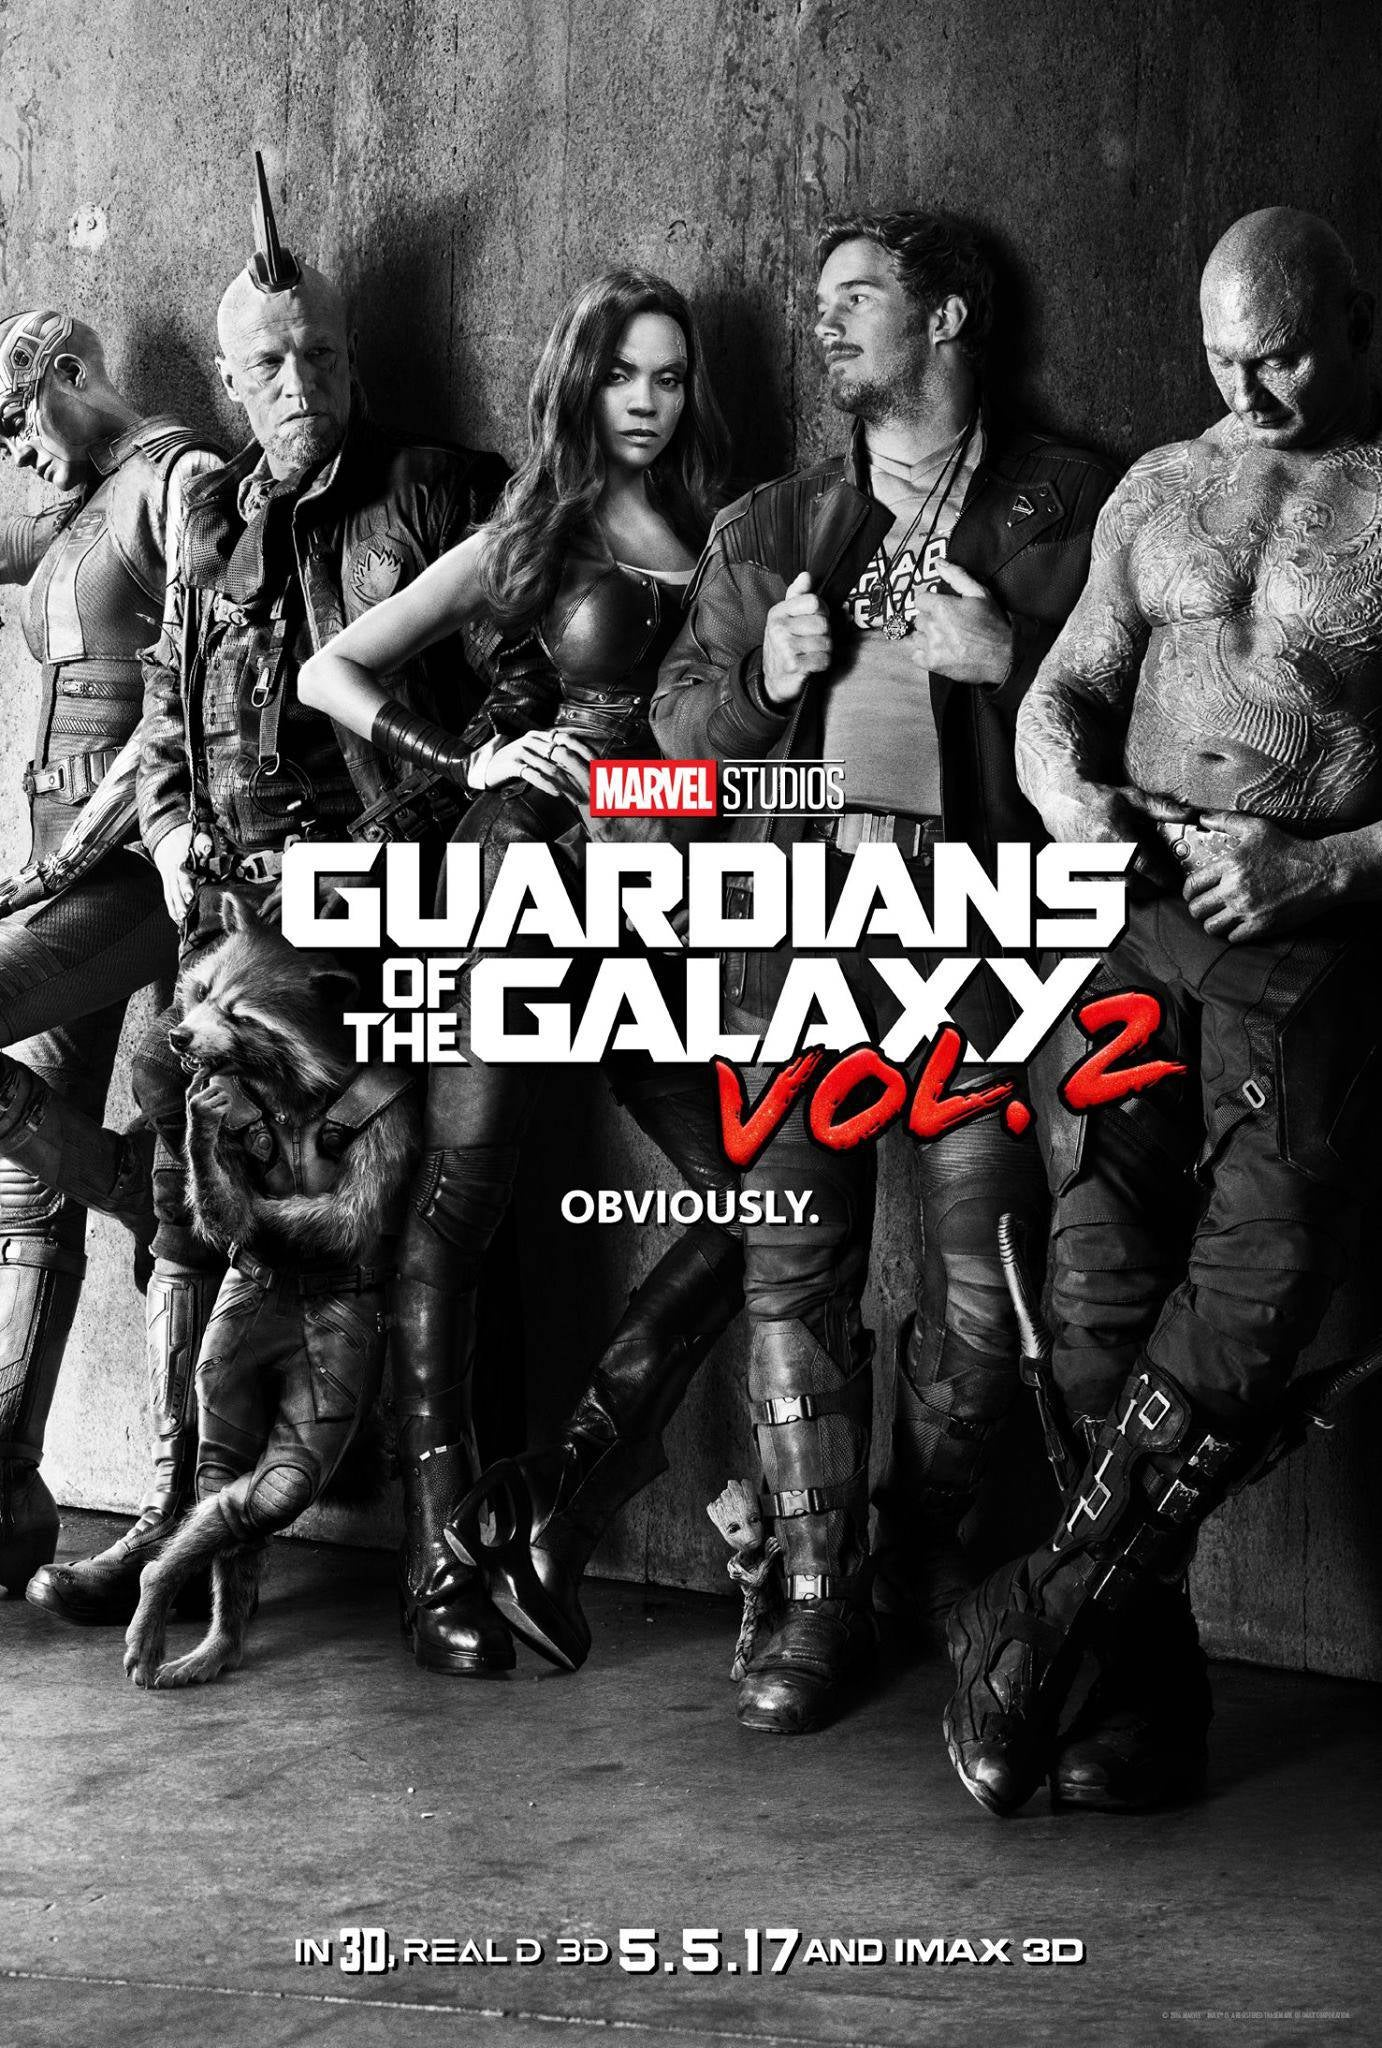 Black directors chair - Trailer For Guardians Of The Galaxy Vol 2 Was Classified Earlier